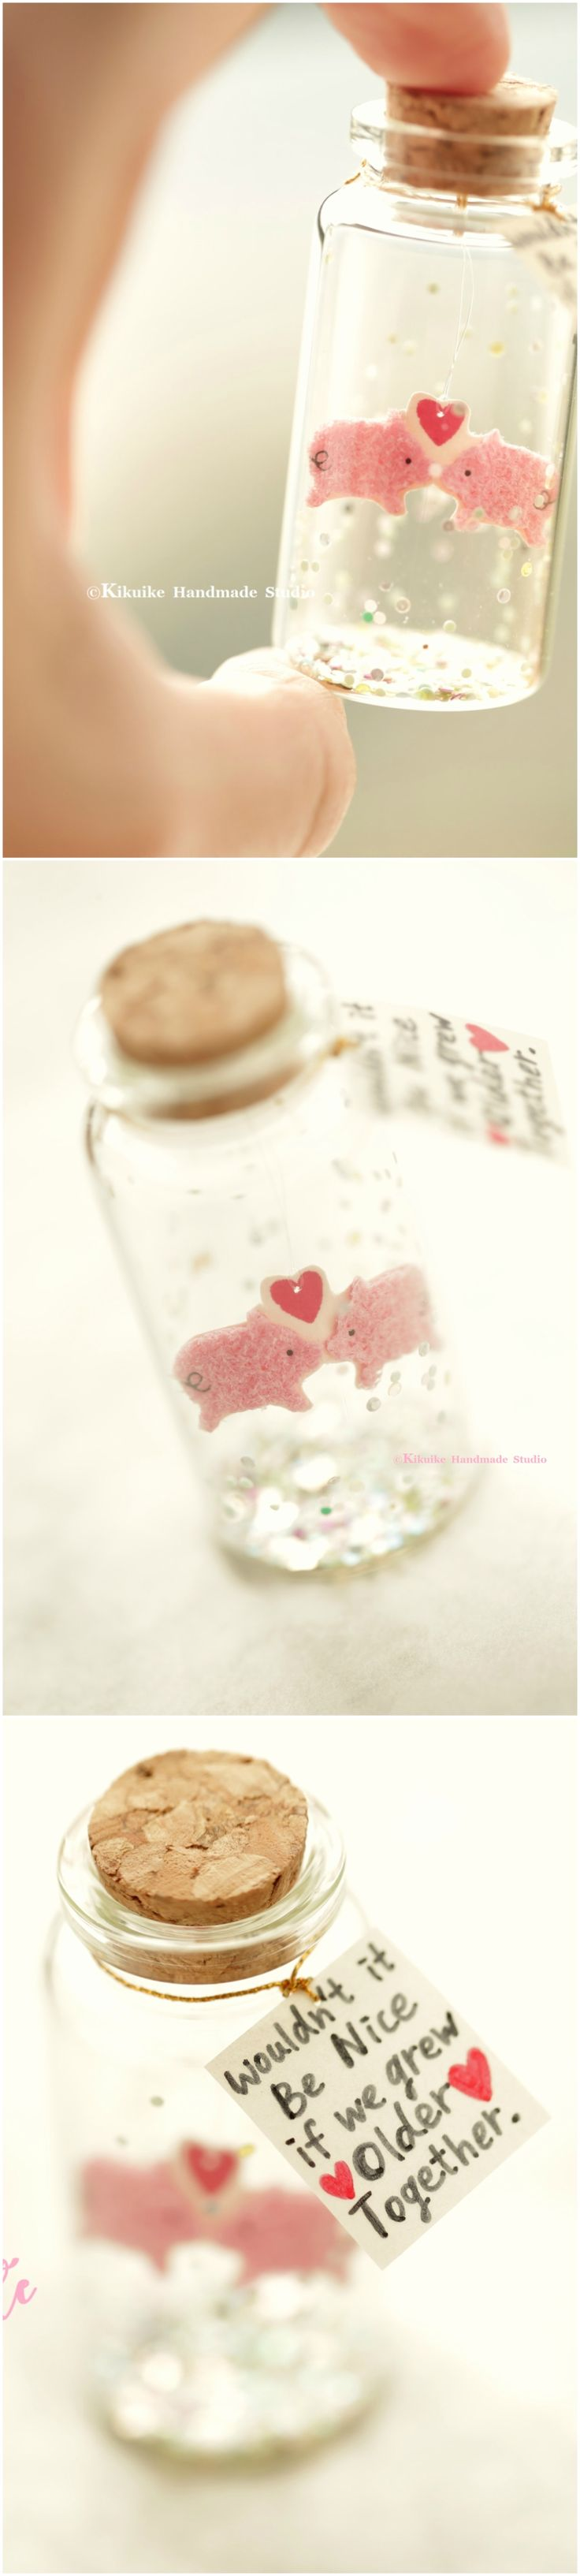 wouldn't it be nice if we grew older together,Tiny message in a bottle,Miniatures,love card,Valentine Card,Gift for her/him,Girlfriend gift, birthday card, message card and miniatures card ideas #pig #piggy #piglet #holidaycard #cuteanimals #handmade #custom #unique #cute  #art #gold #messagecard #homedecor #deskdecor #glitter #lovecard #sweet #greetingscard #paper #seasonalcard #partygift  #personalizedgift #Longdistancegift #birthdaycard #kikuikestudio #tiny   #illustration